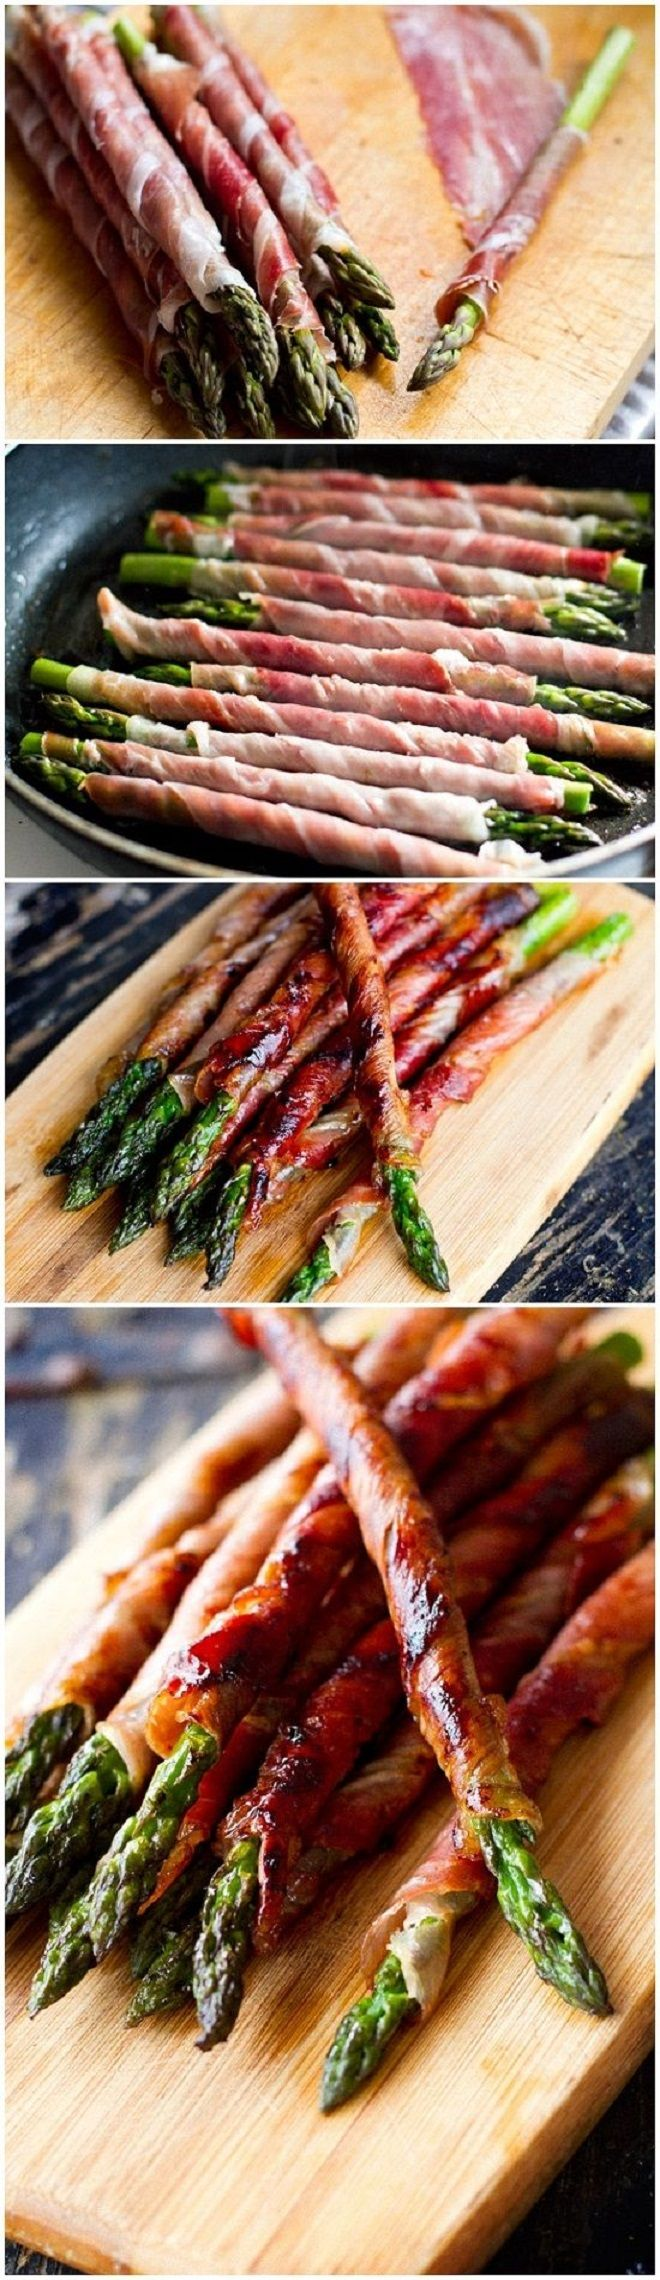 Prosciutto Wrapped Asparagus.. Crispier than bacon. Cut asparagus into thirds to make a canapé version.                                                                                                                                                     More